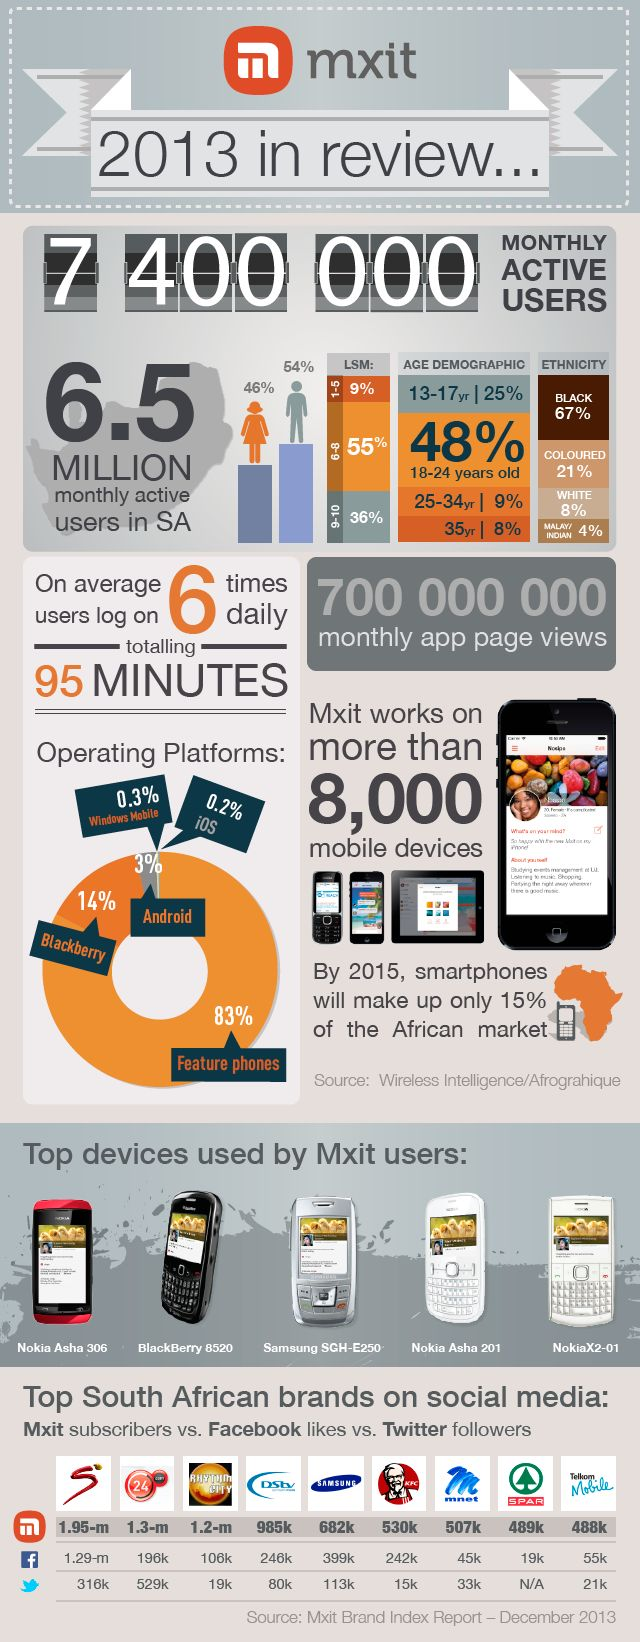 2013 in review: user stats, insights and top devices and brands on Mxit for Jan - Dec 2013